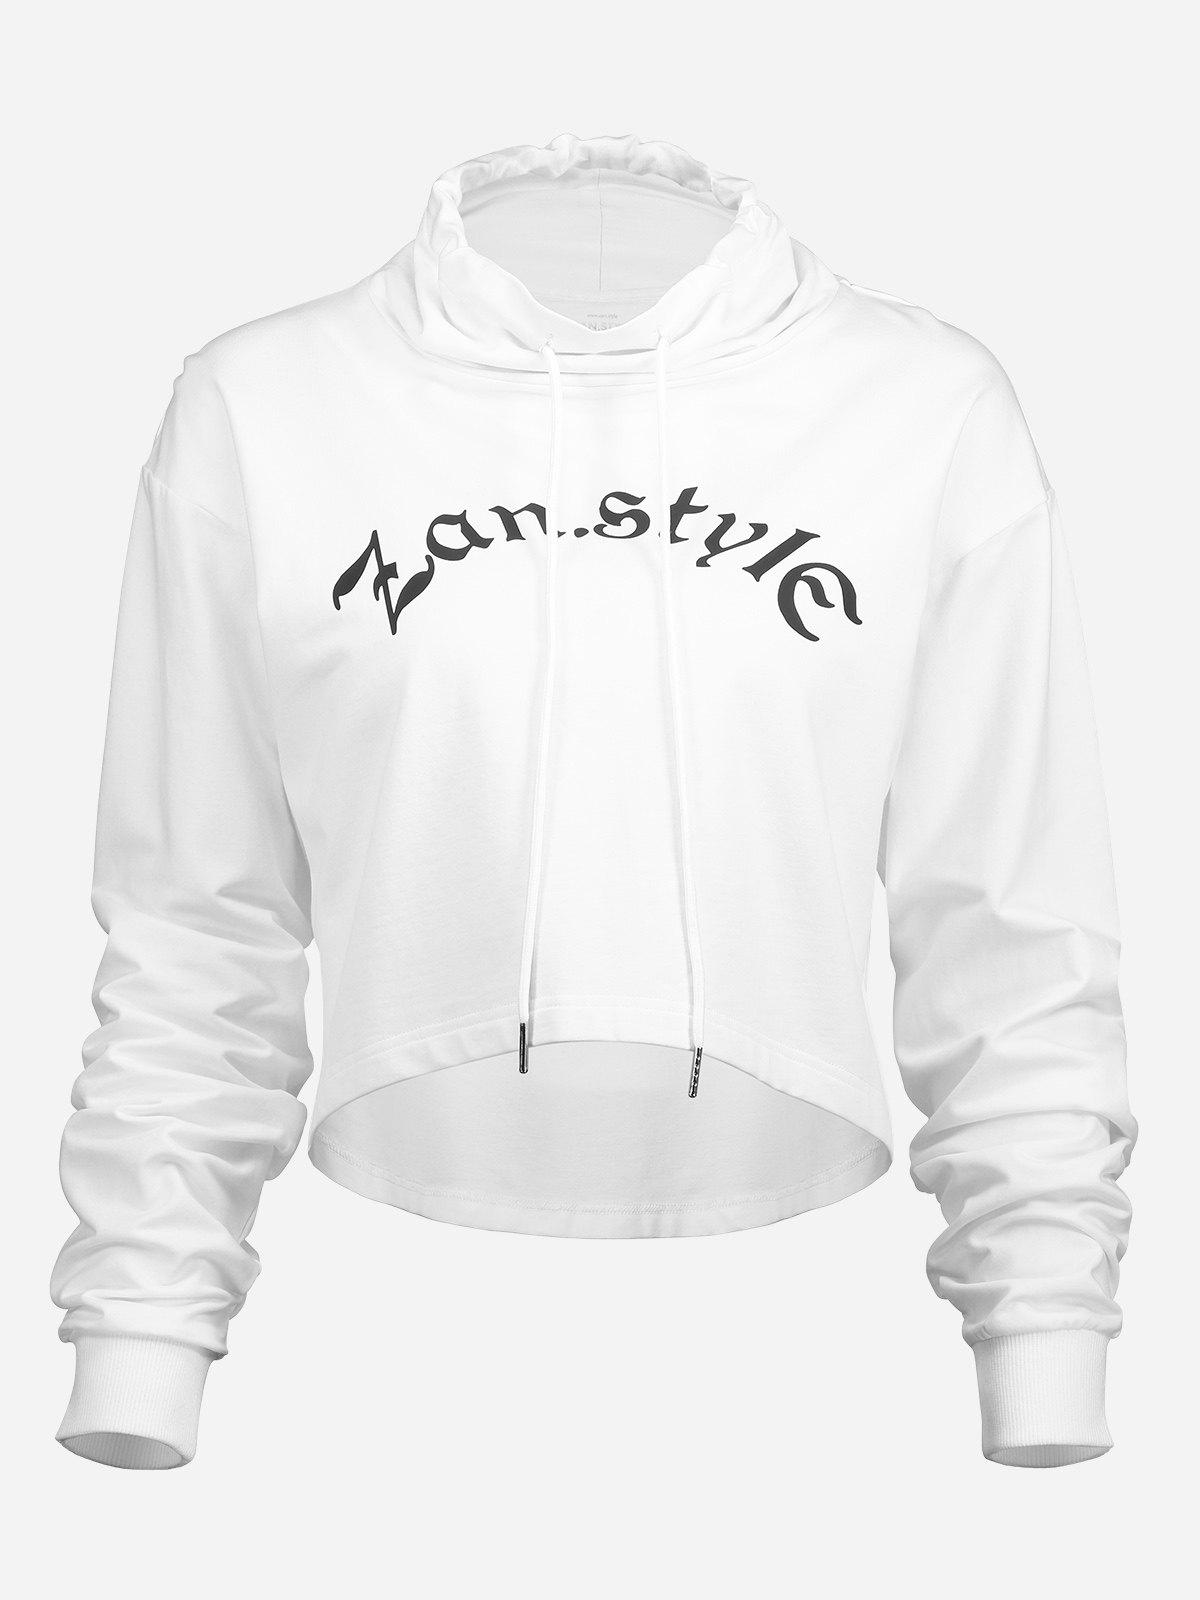 ZAN.STYLE Drawstring Cropped Hoodies